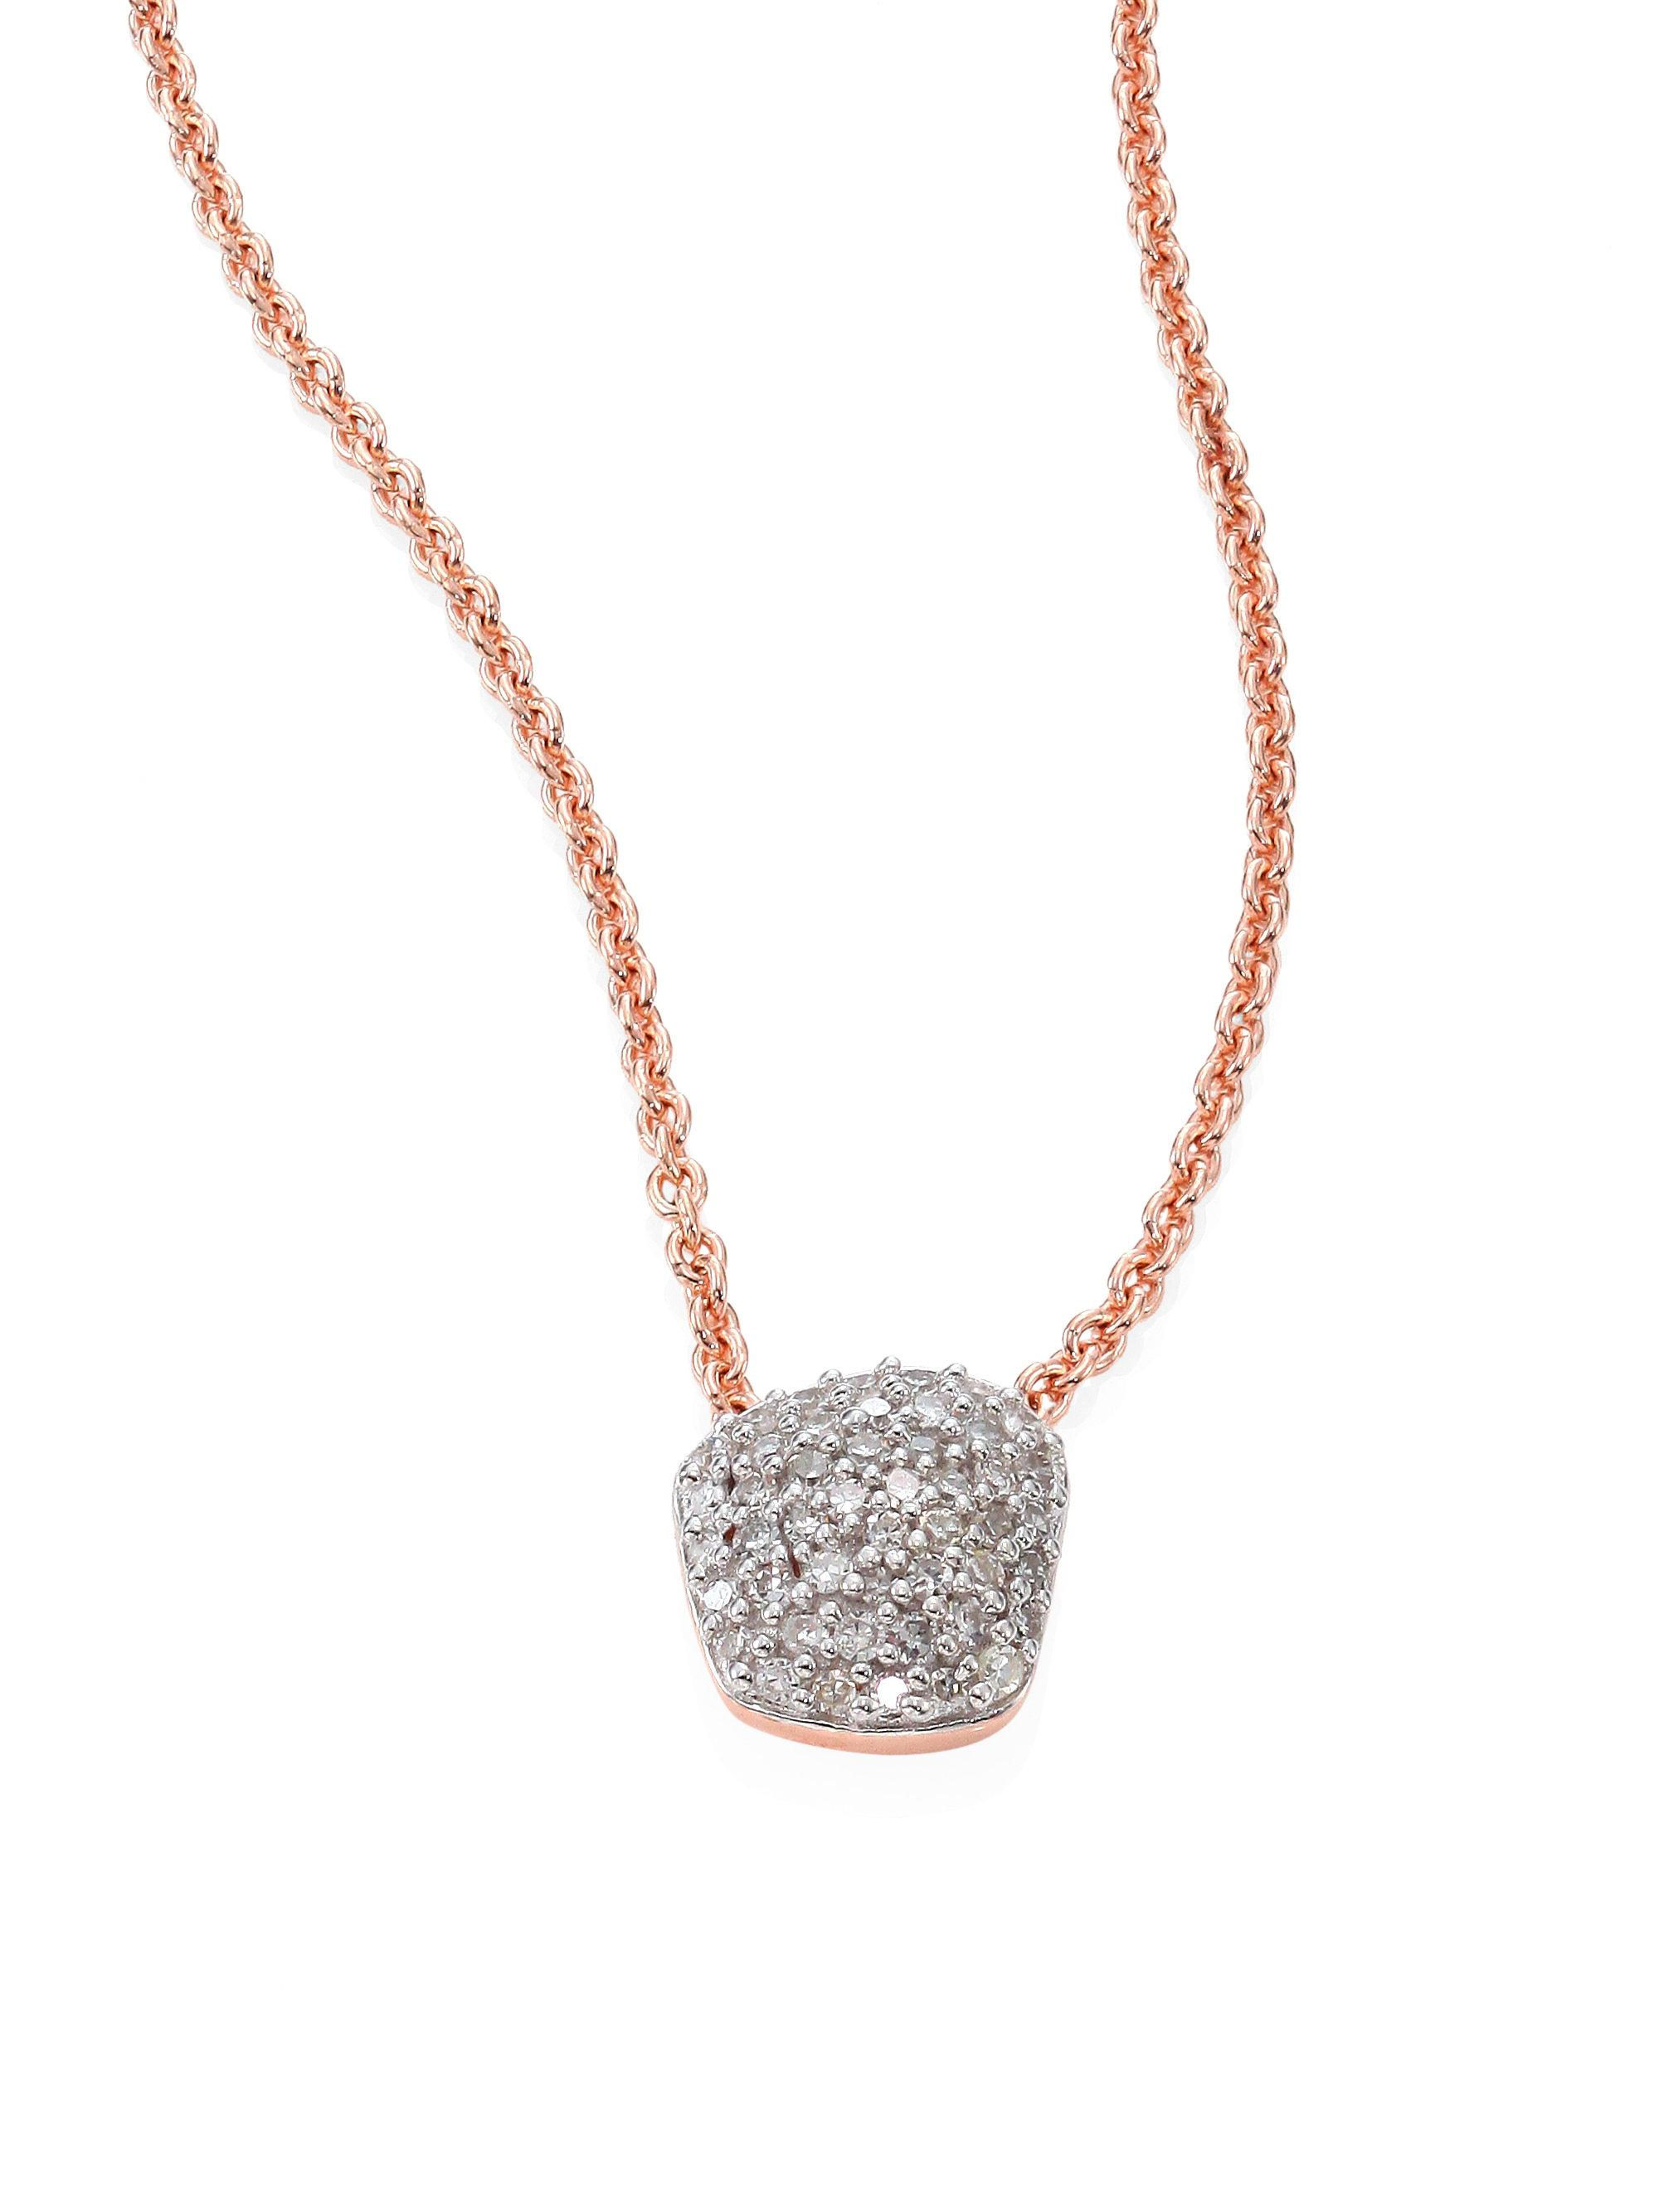 truly heart mini pave en gb pendant necklaces necklace jewellery yours